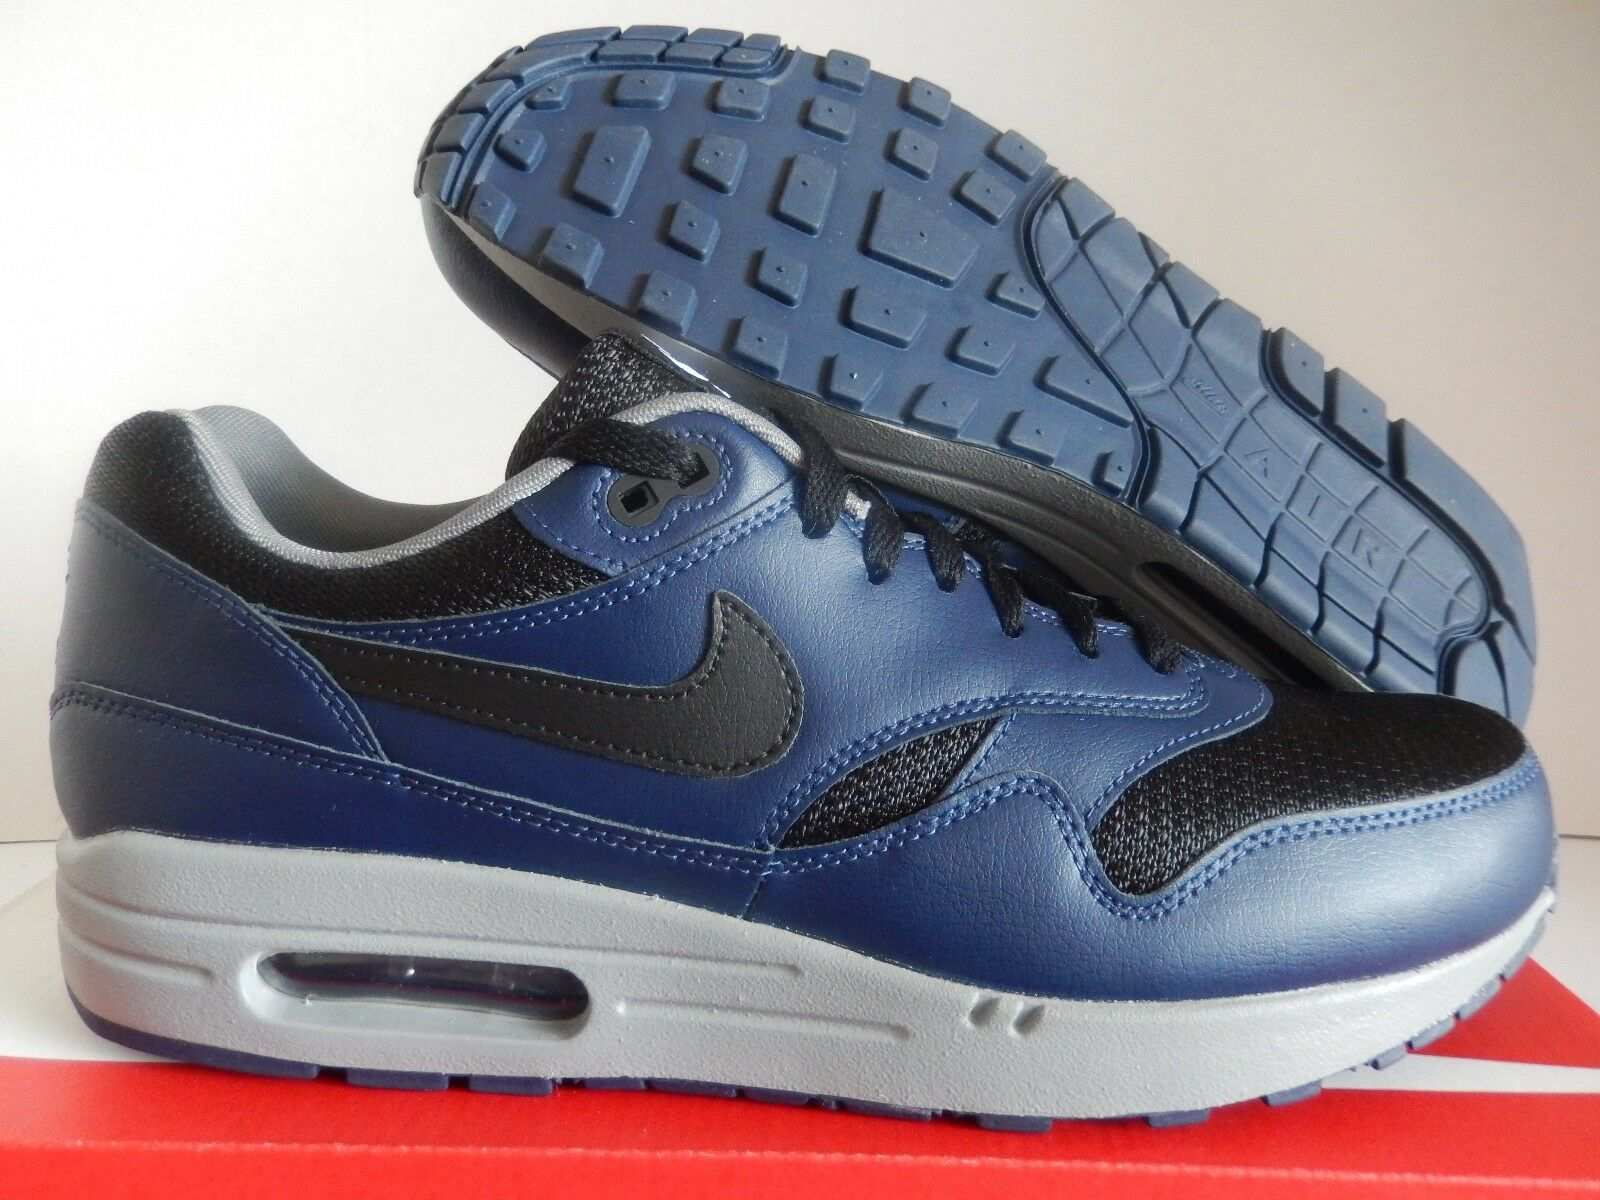 NIKE AIR MAX 1 ID NAVY BLUE-BLACK-GREY Price reduction Seasonal price cuts, discount benefits